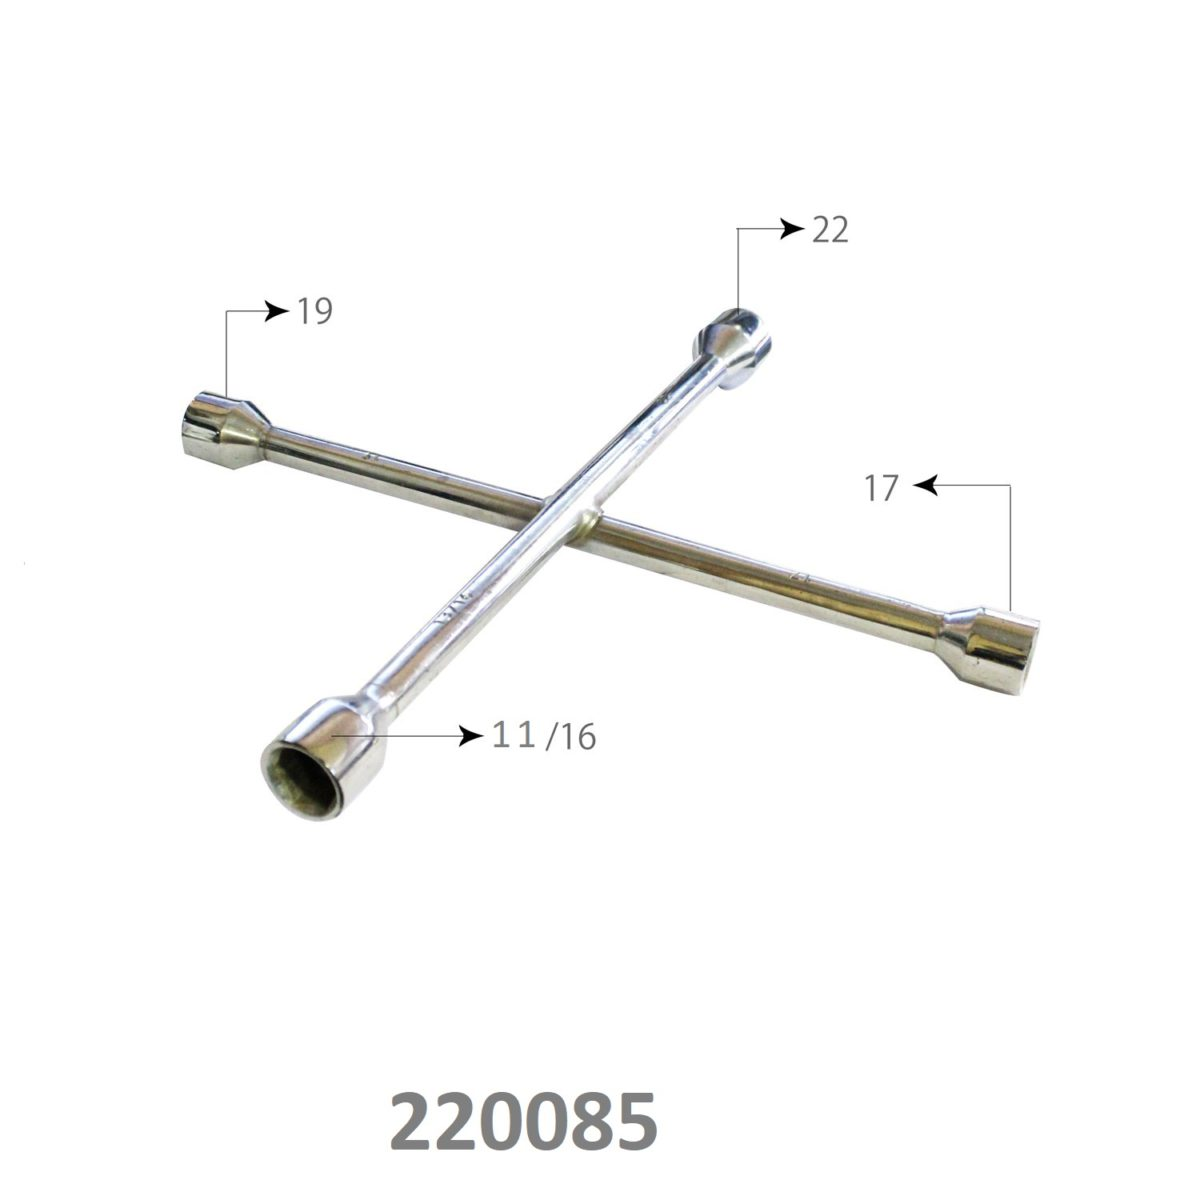 SARV Universal 4 way Cross Hex ,Wheel Nut Wrench 17mm X19mmx22mm x11/16″ , Combination mm & SAE lug wrench